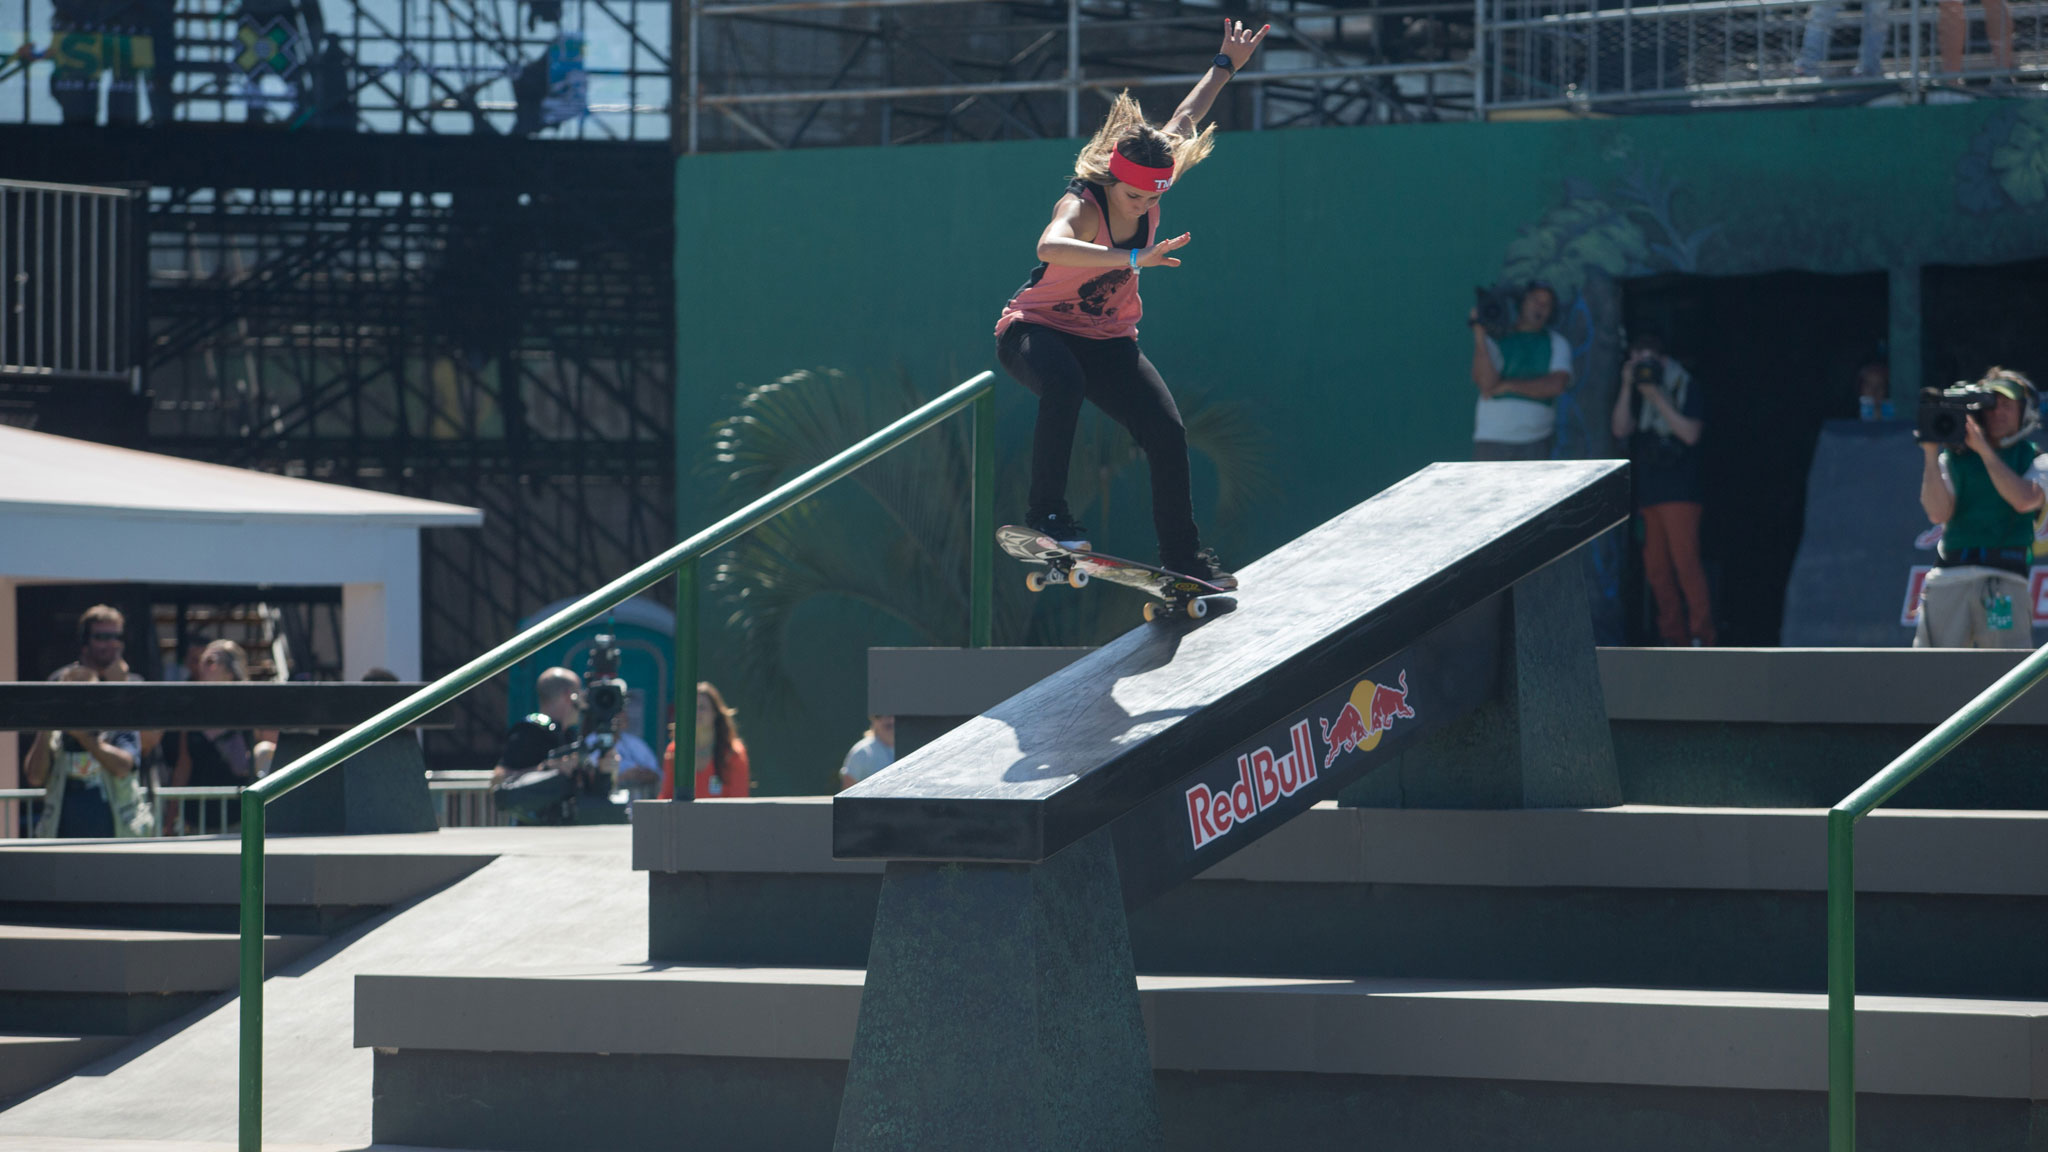 Leticia Bufoni hopes momentum from her gold medal win in Women's Skateboard Street at X Games Foz will translate to a first-ever Women's Park gold in Barcelona.